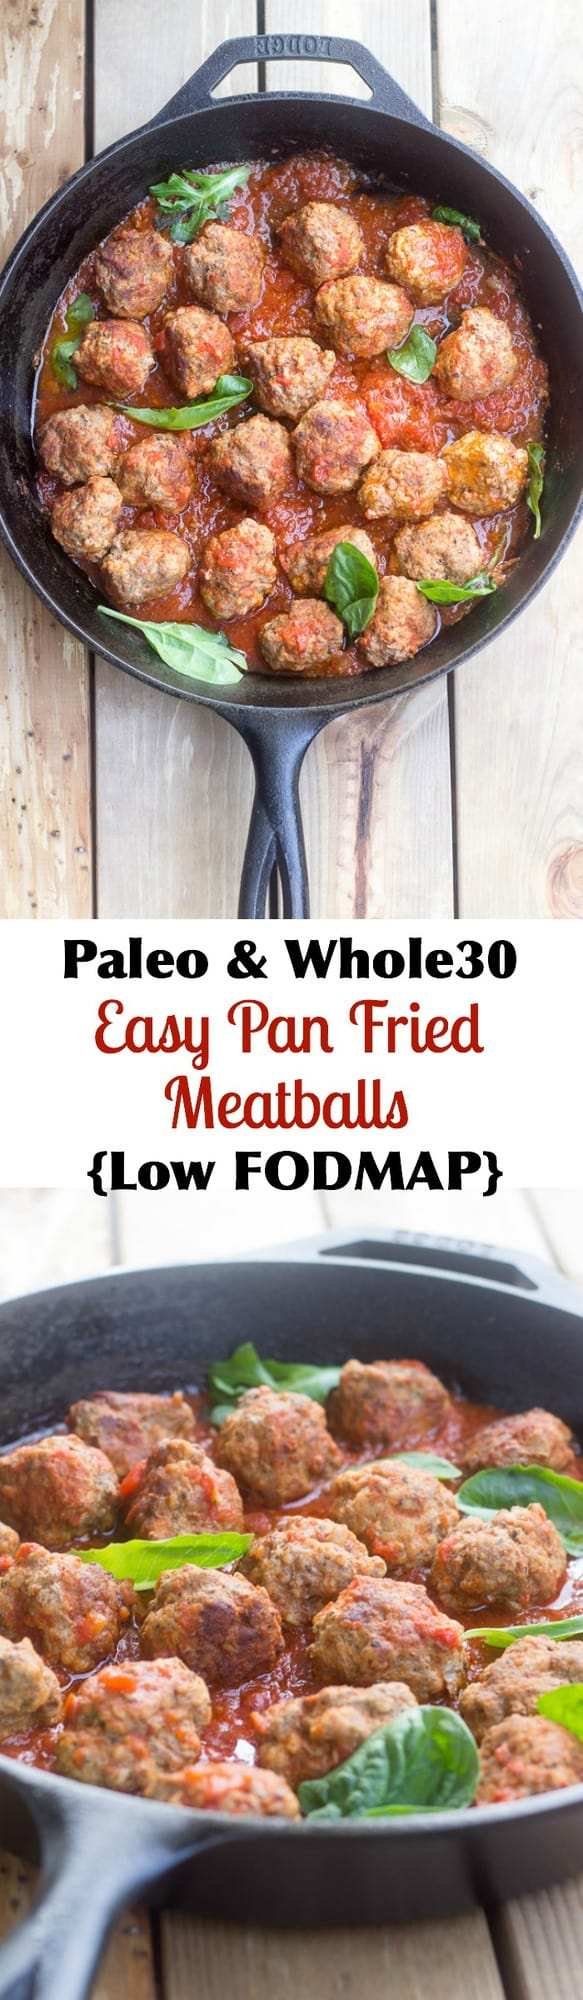 Paleo and Whole30 friendly easy pan fried meatballs that are perfect for a weeknight dinner! They're also low FODMAP and great for picky eaters.